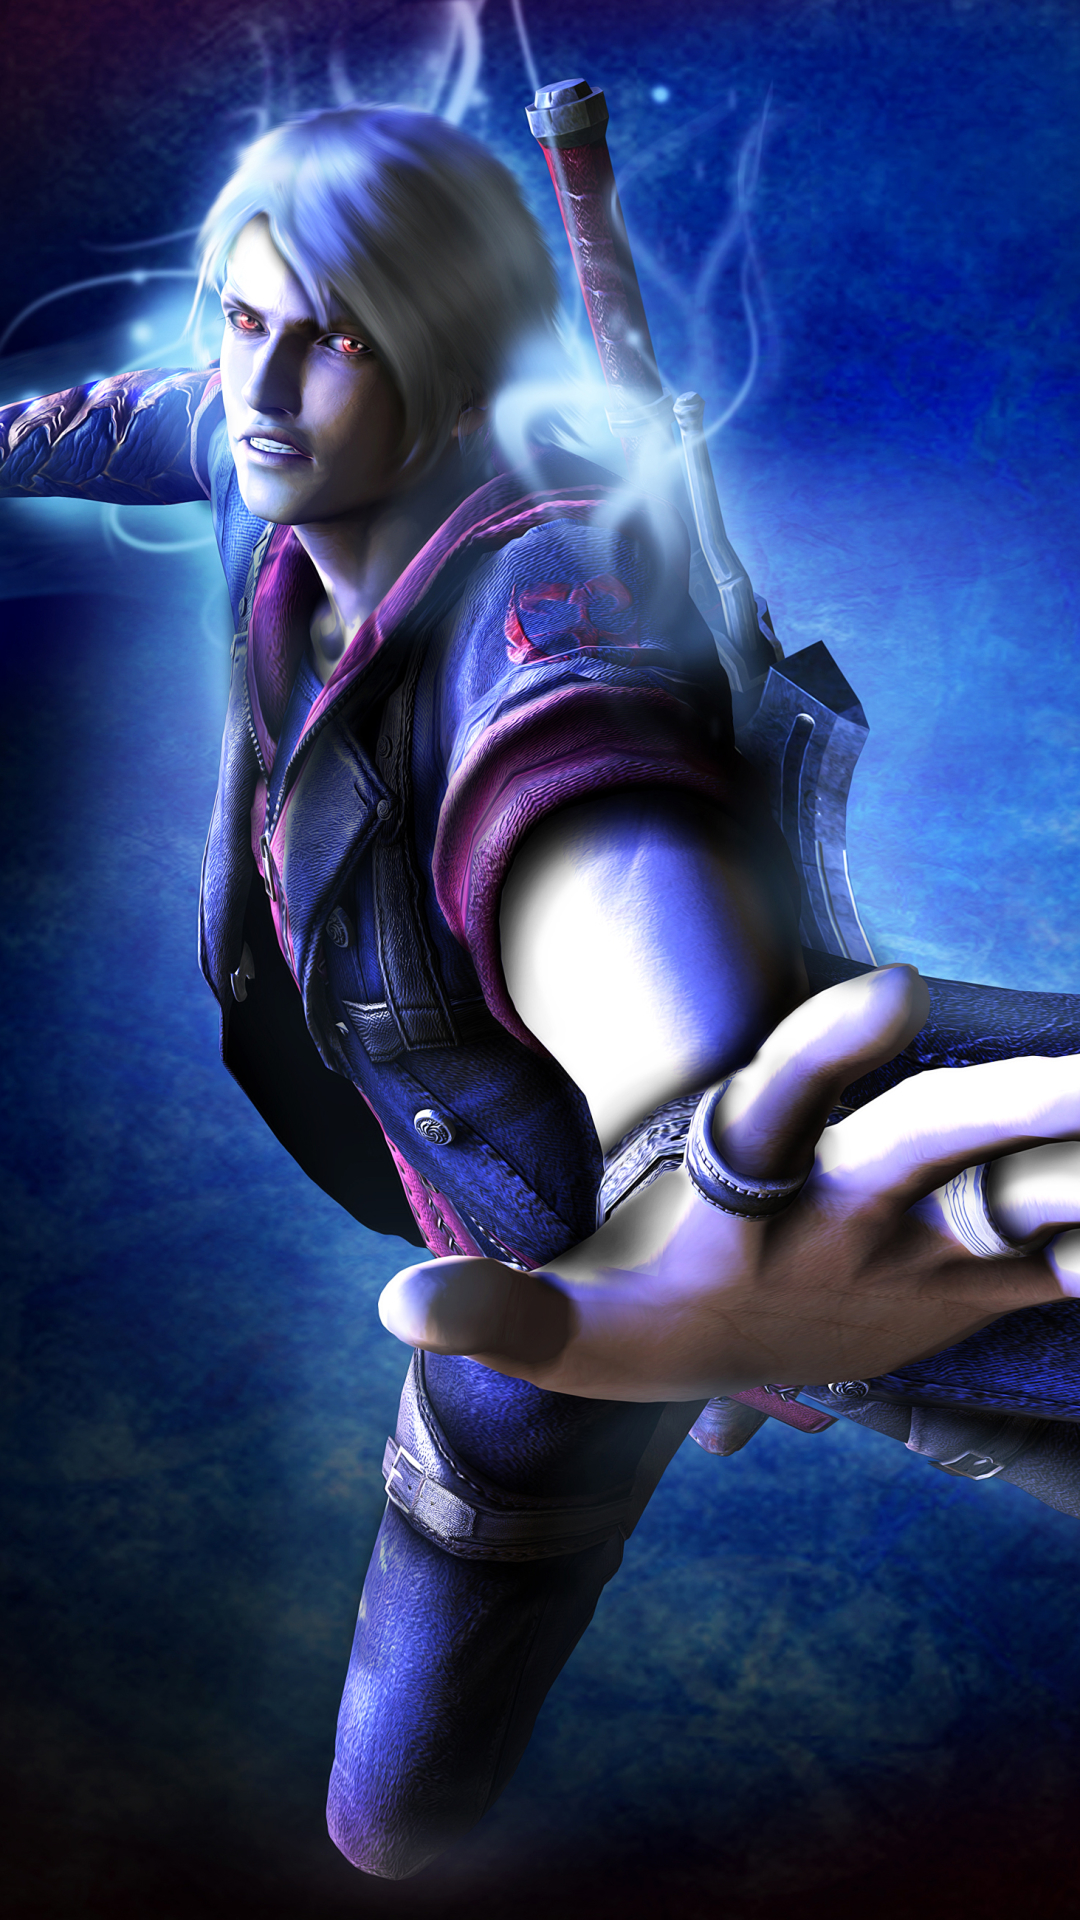 video game/devil may cry 4 (1080x1920) wallpaper id: 688406 - mobile